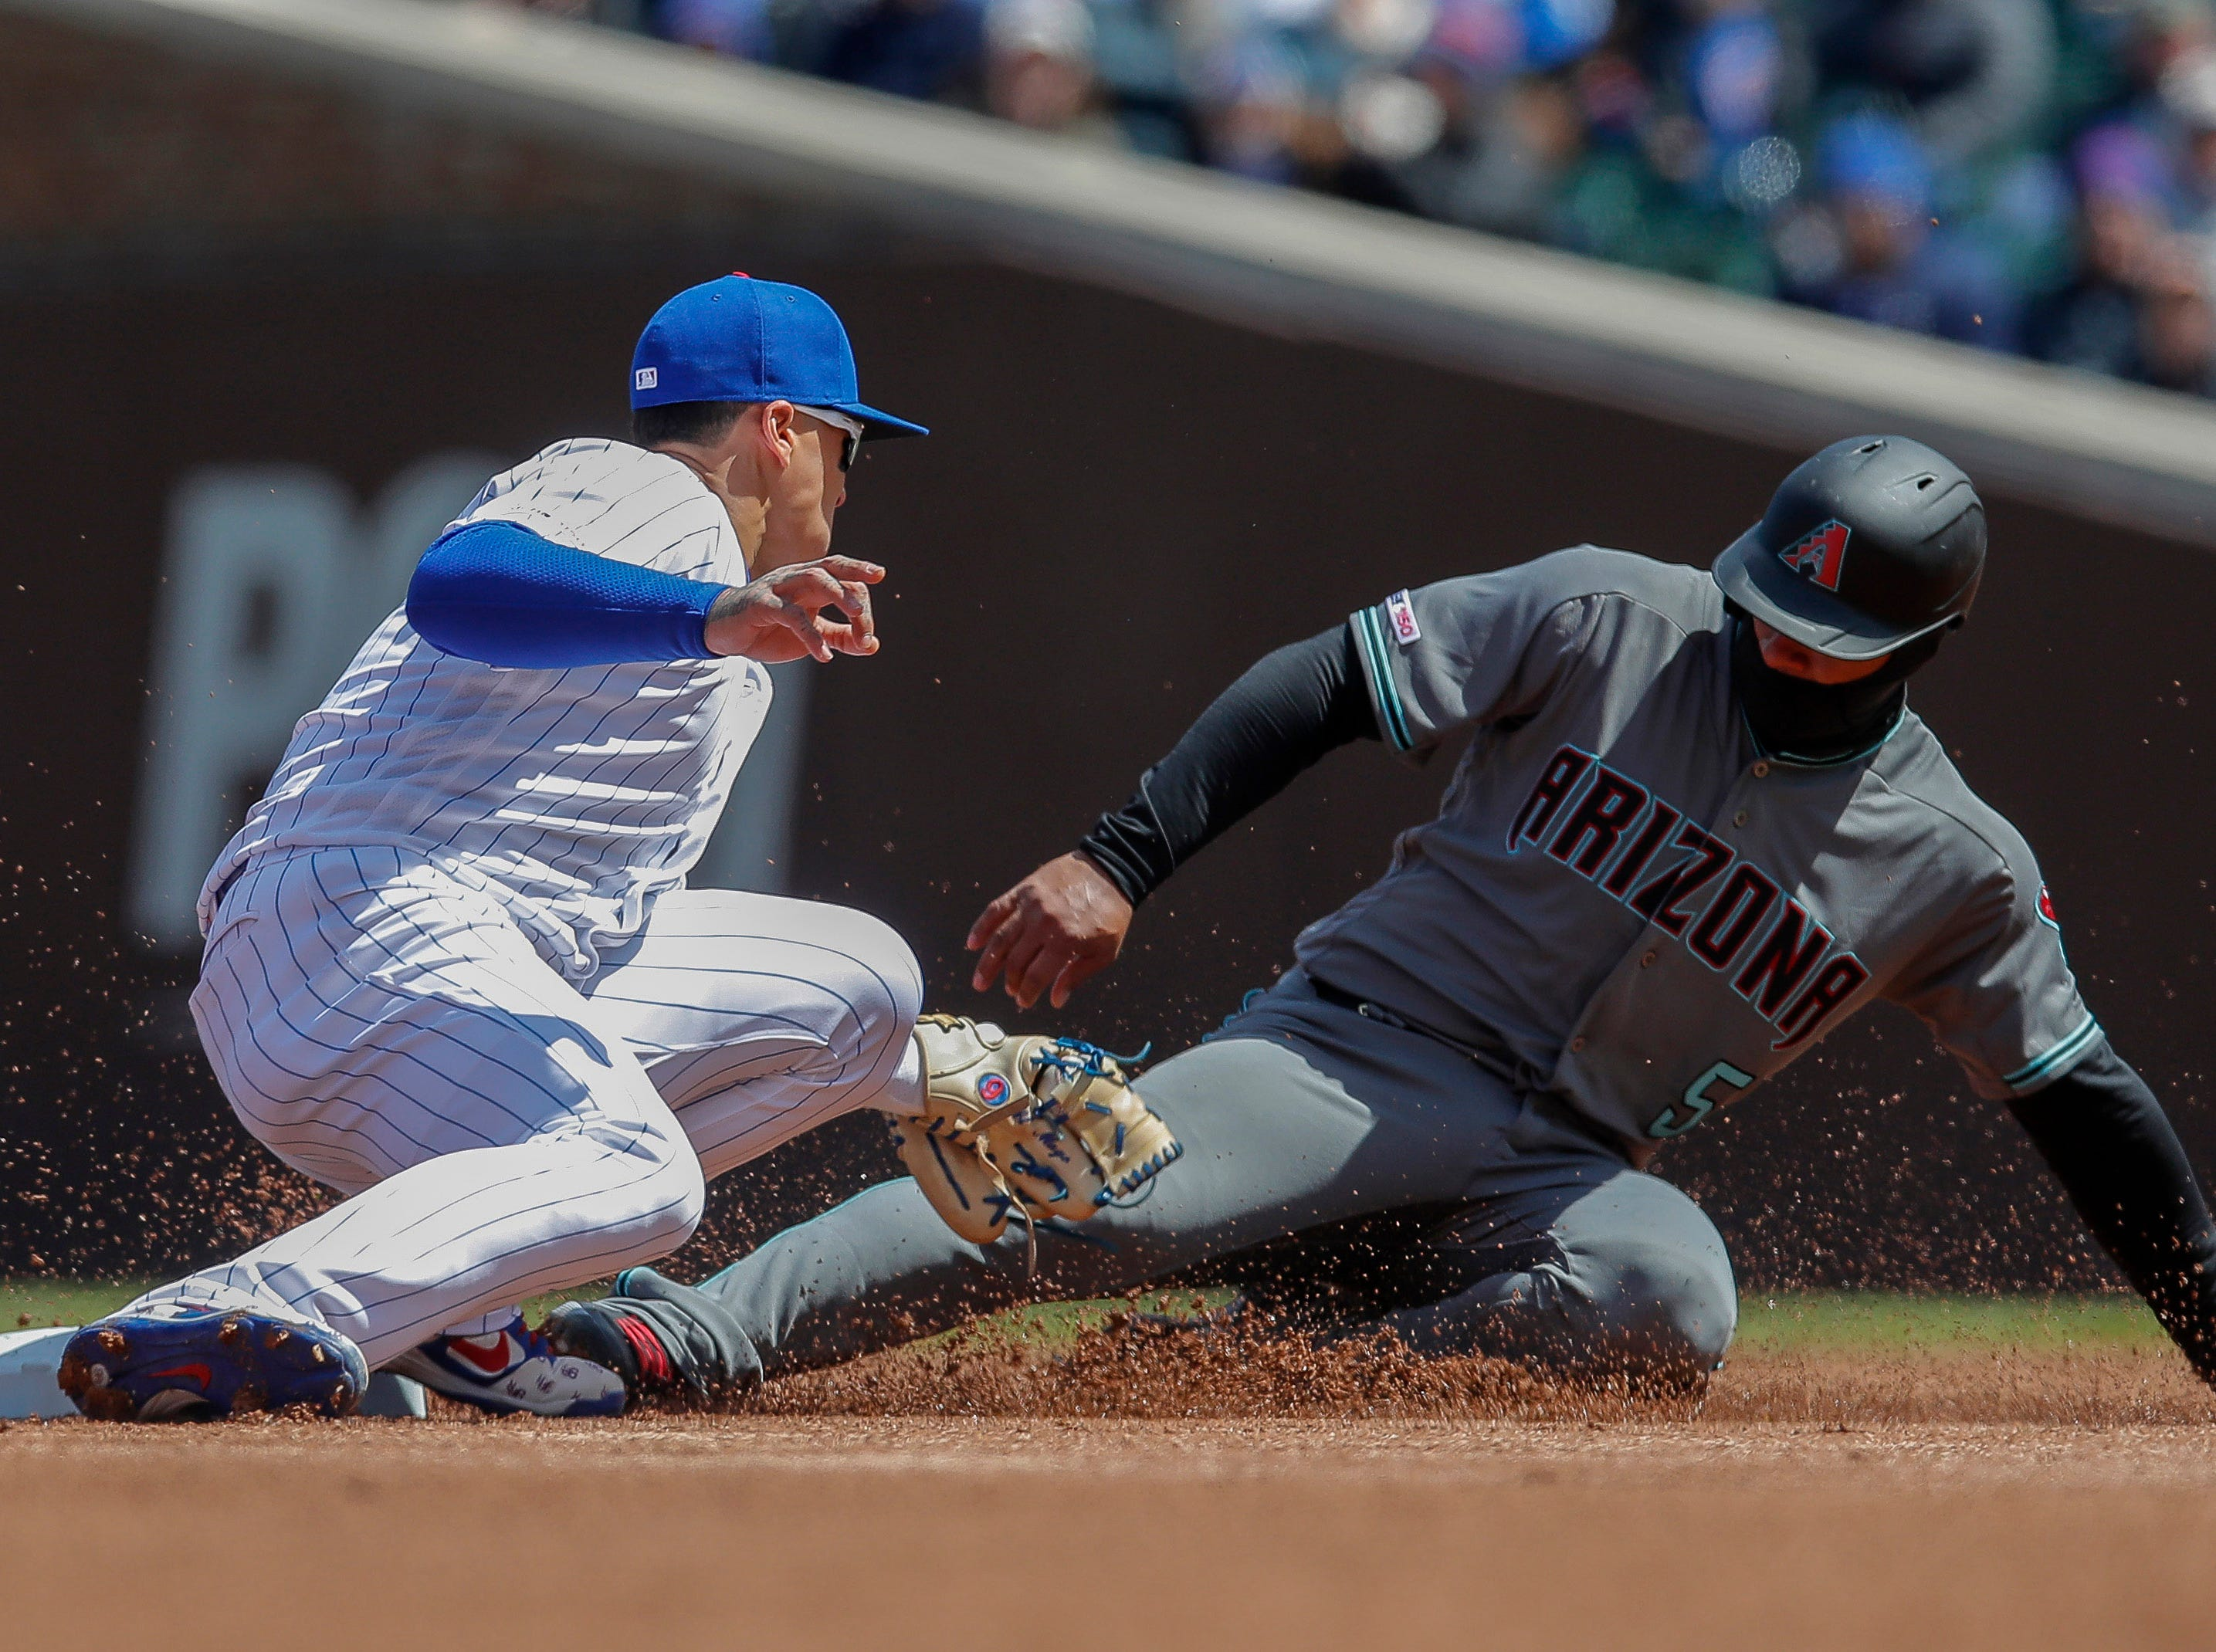 Diamondbacks third baseman Eduardo Escobar is tagged out by Cubs shortstop Javier Baez as he tries to steal second base during the first inning of a game April 19 at Wrigley Field.